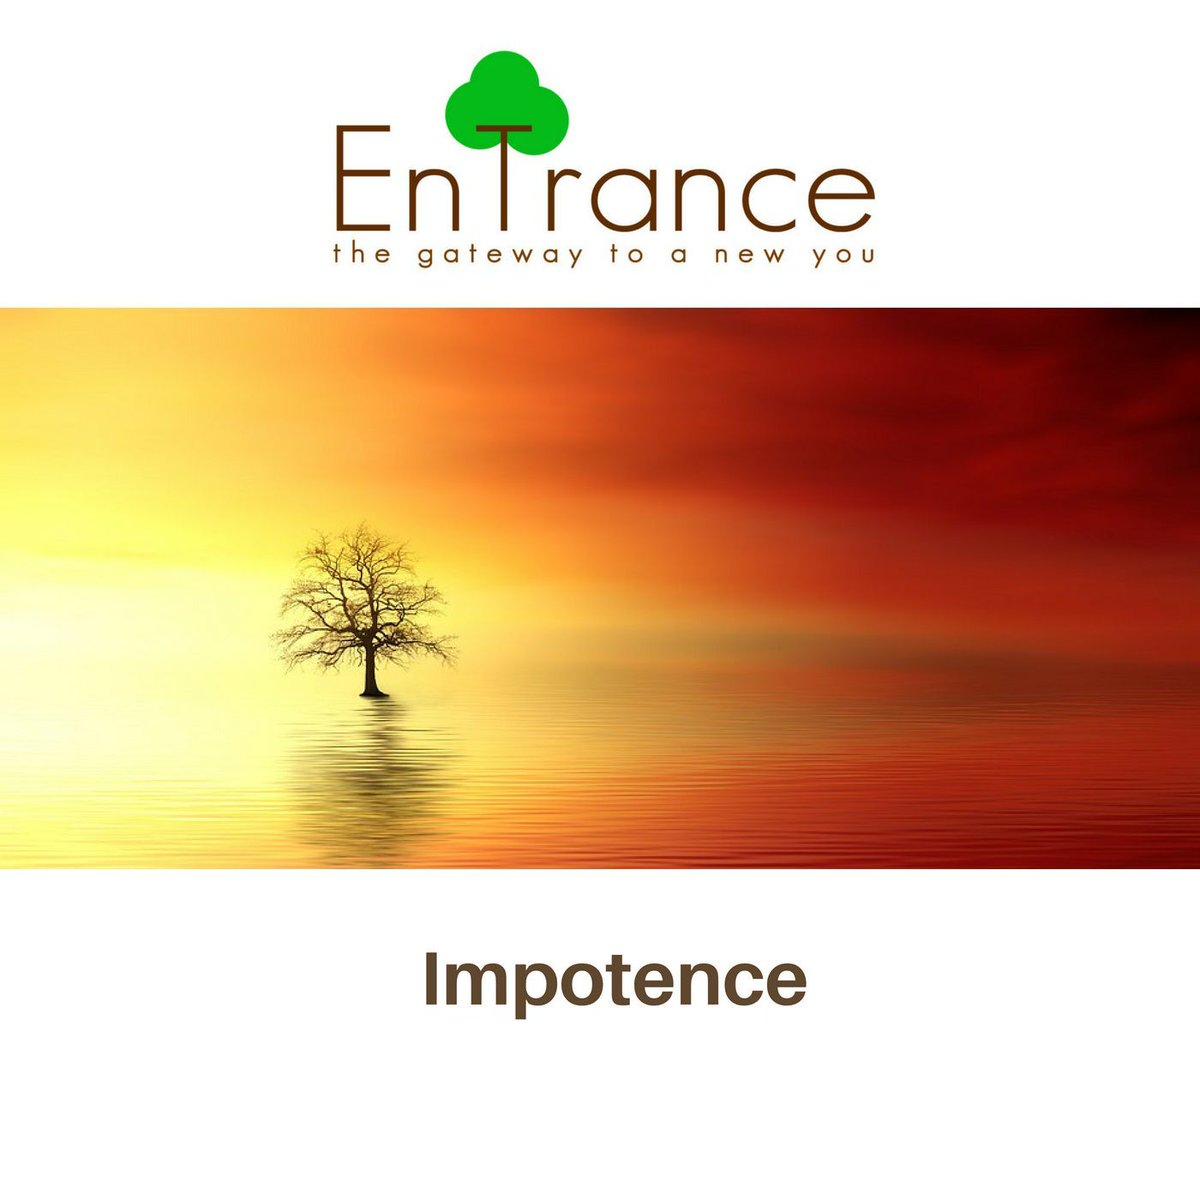 EnTrance Self Help Hypnosis App EnTrance (Apple store) - https://t.co/y8zTW0cAS6 EnTrance (Google play ) - https://t.co/VtgidVYqxV Change your #life today. #selfhelp #personaldevelopment #motivation #HealthTech #meditation #hypnosis #recovery #addiction #wellbeing #free https://t.co/4RqksEkLeX